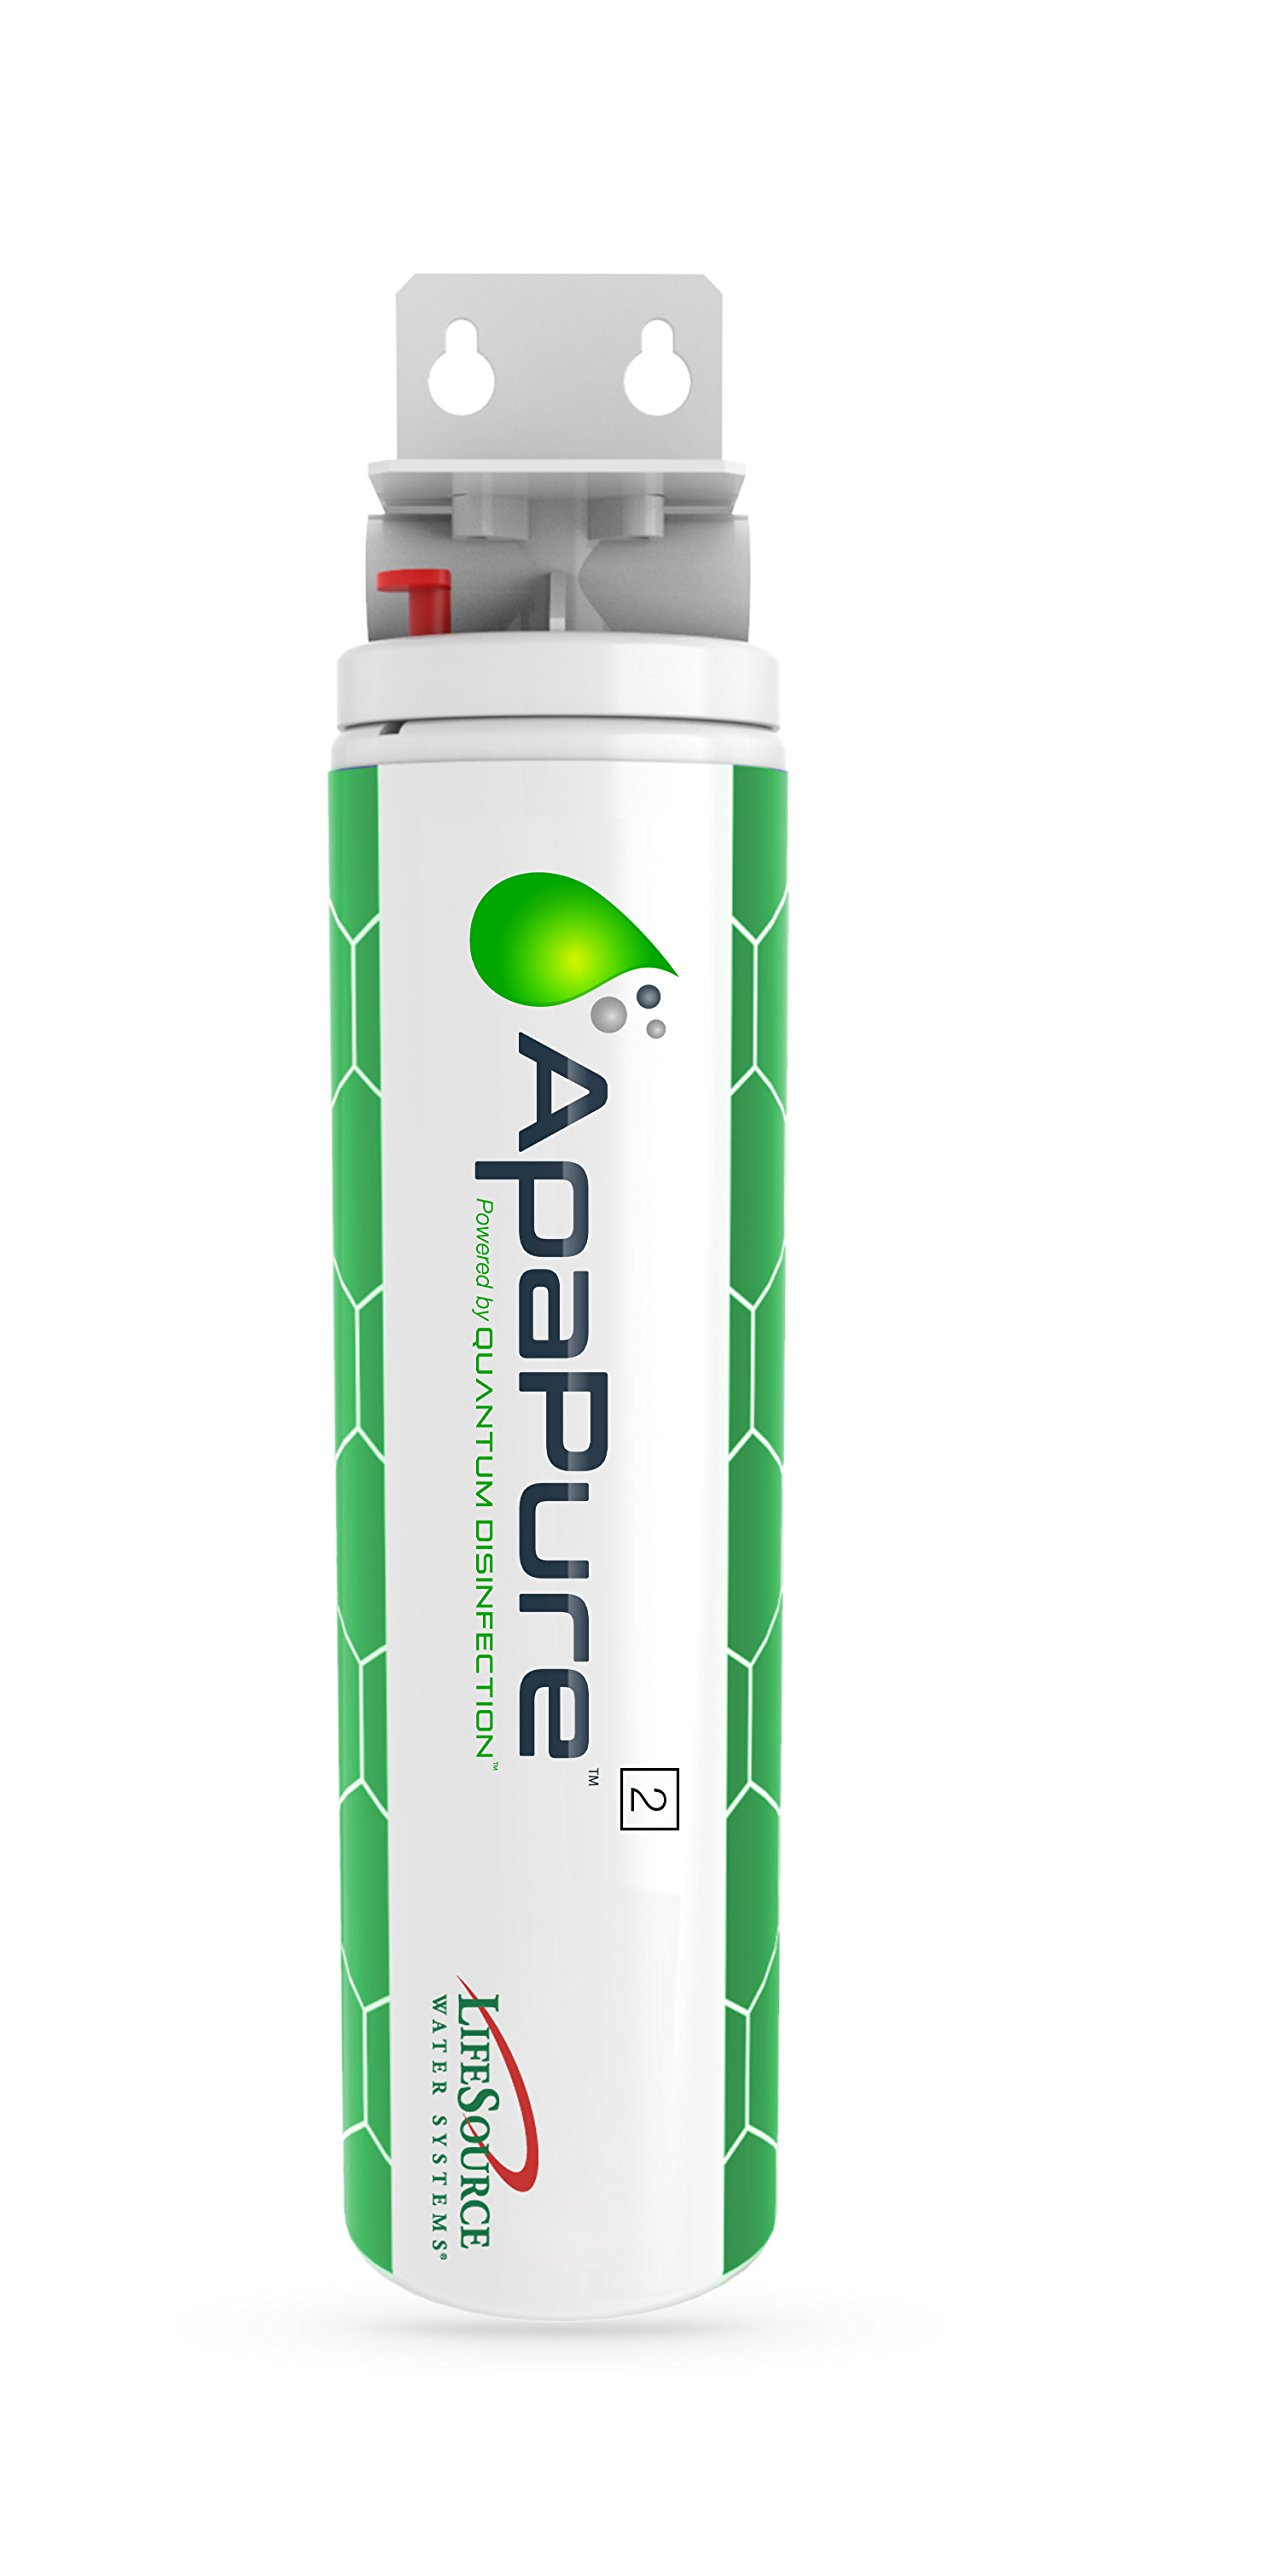 LifeSource Water ApaPure 2 – New Patented Technology – Advanced In-Home Water Filter – Removes Bacteria & Viruses Using Quantum Disinfection – No Chemicals or Power – Replaces Conventional UV Filter